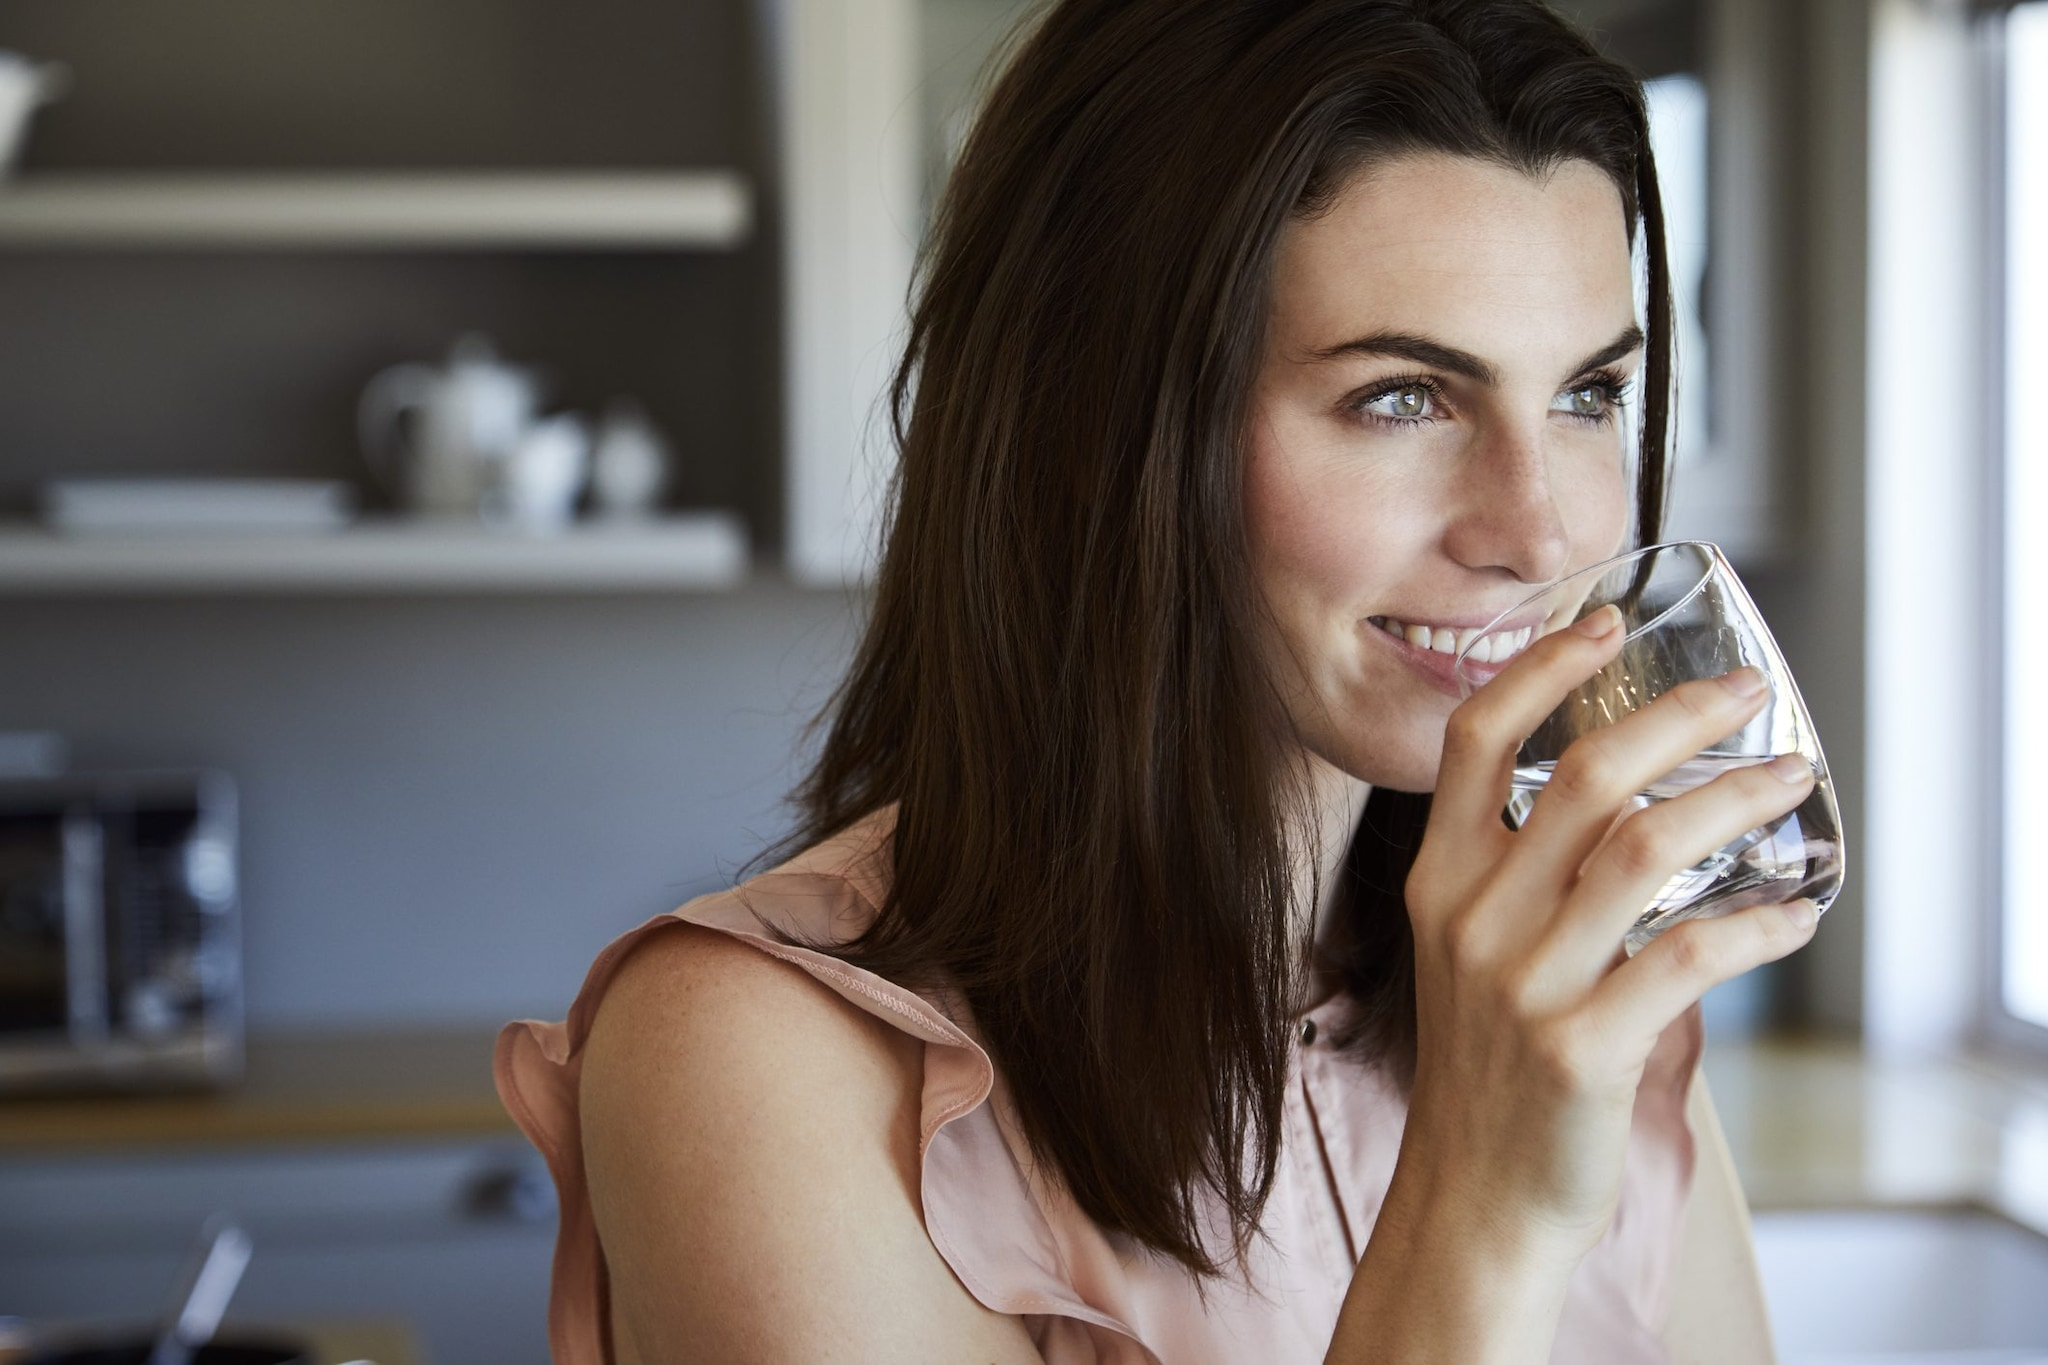 Do you want to lose weight? Here's how by drinking water